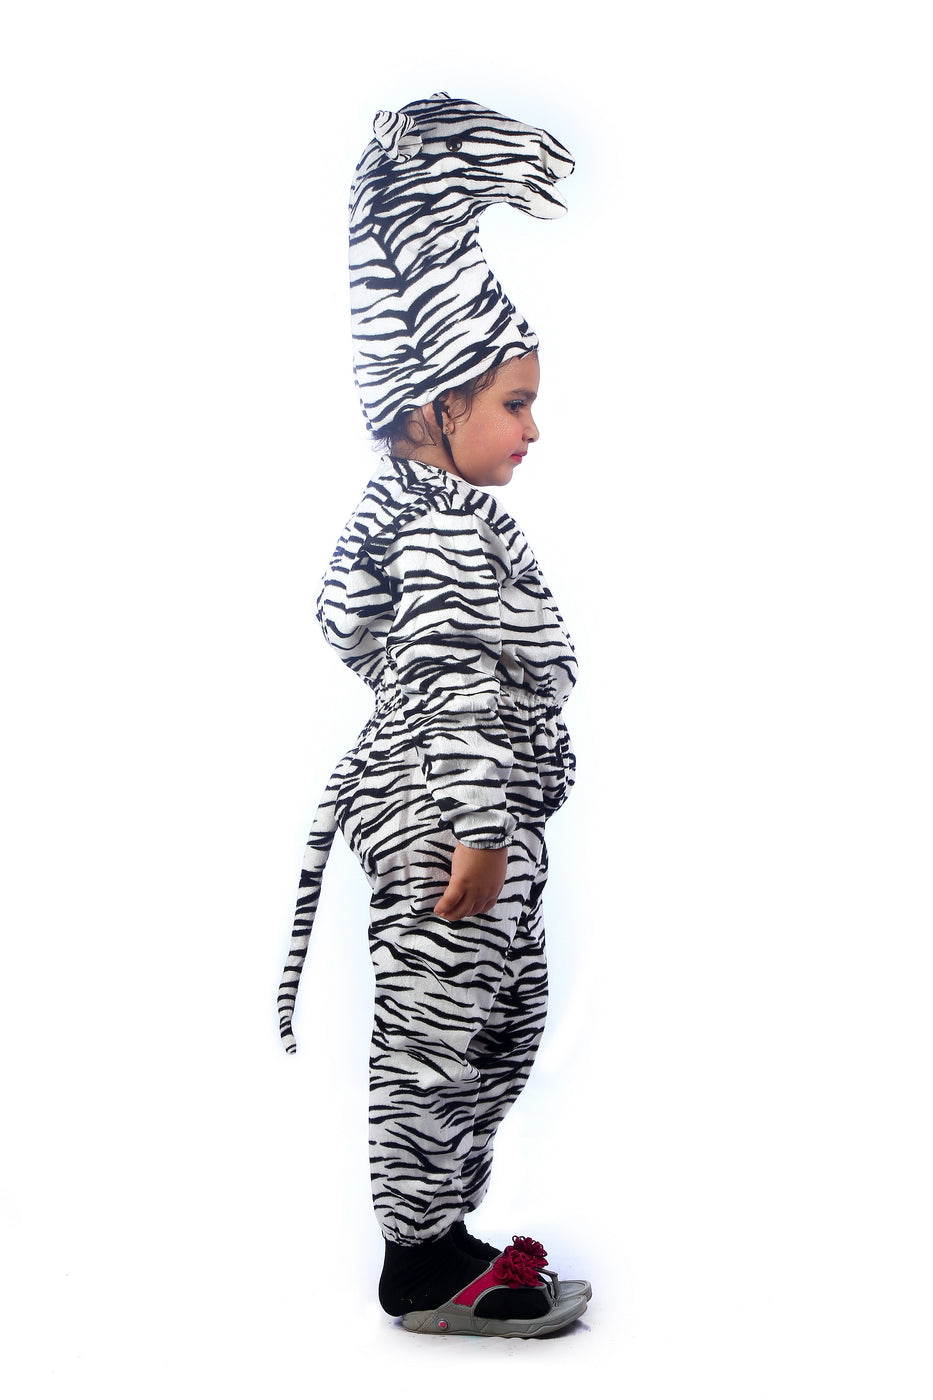 Wild Animal Zebra costume